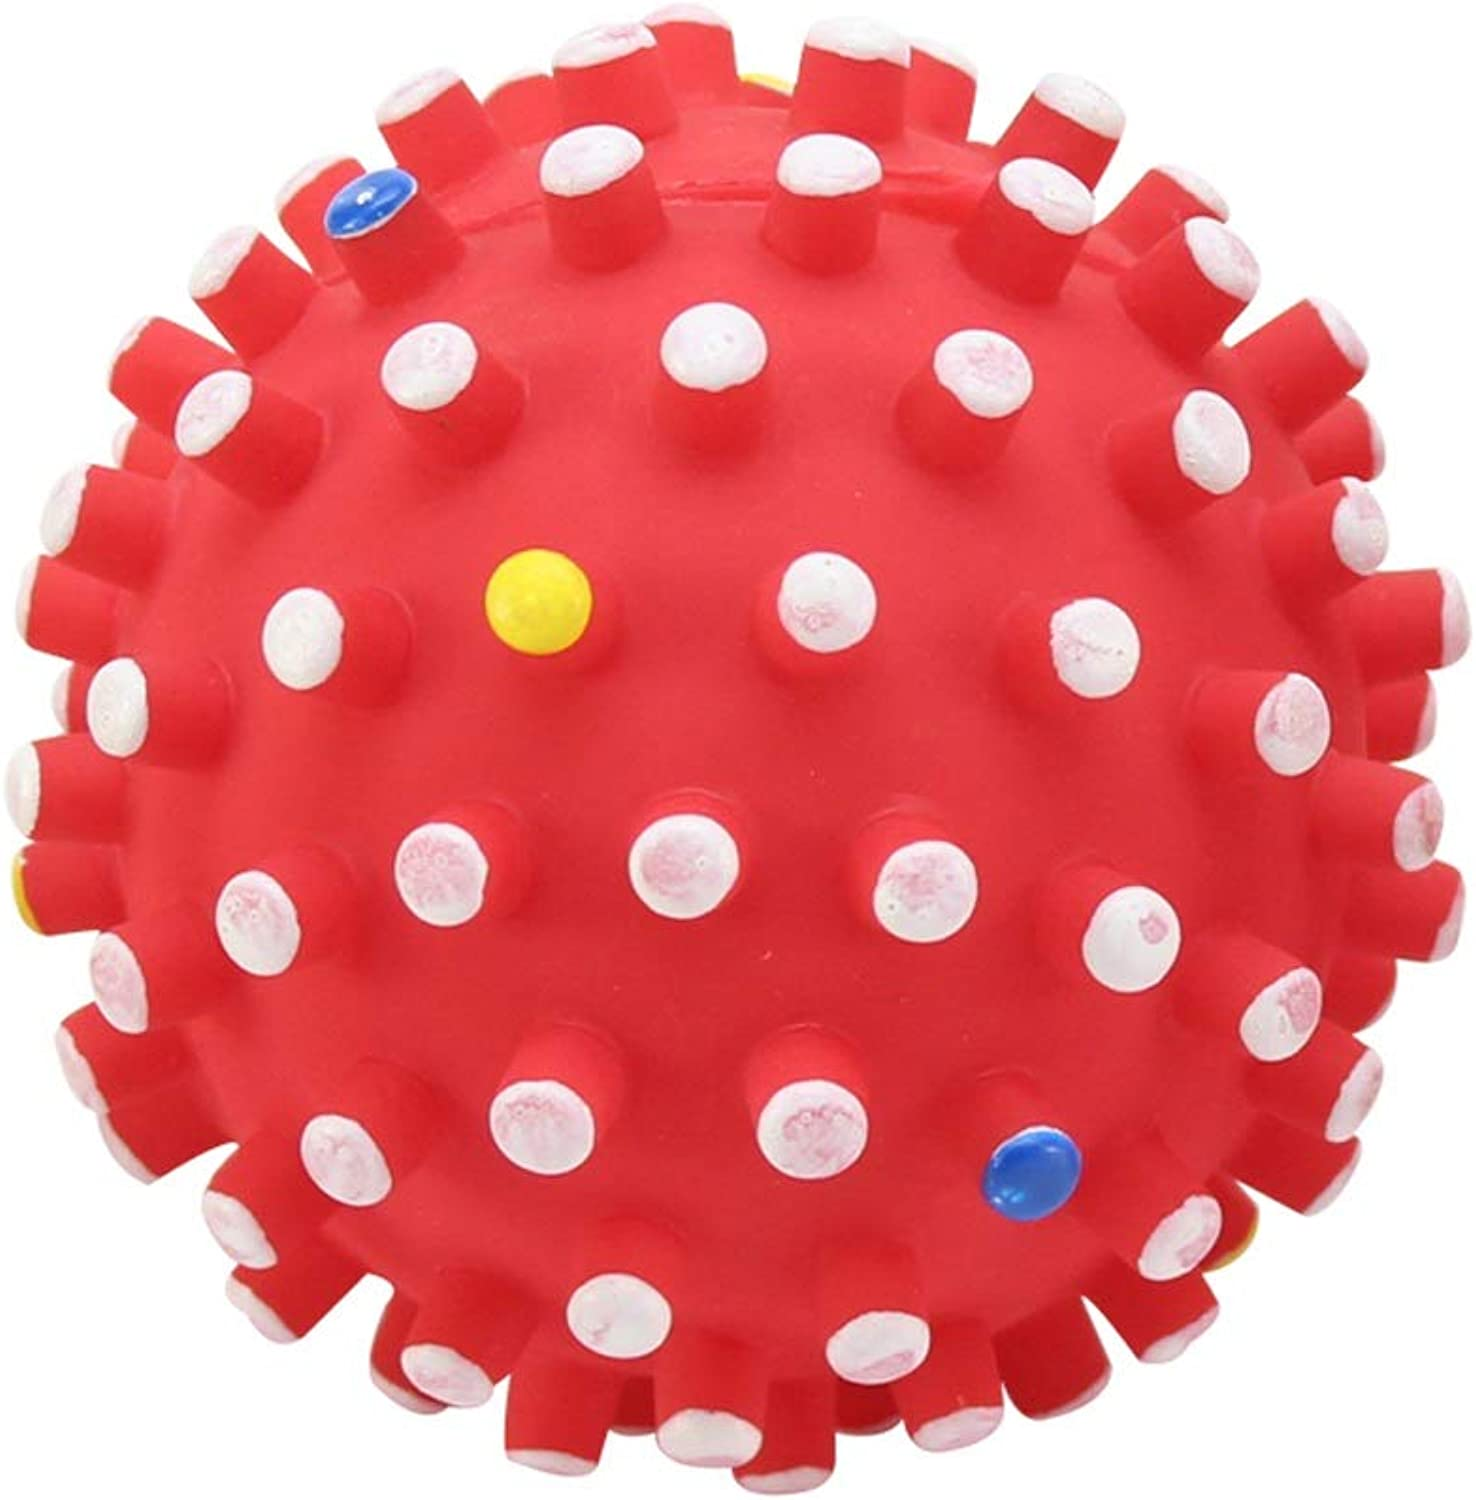 QYSZYG Dog Supplies Dog Toys BiteResistant Pet Toys Large Dog Toy Ball Vocal Small Dog Toy pet Toy (Size   12cm)